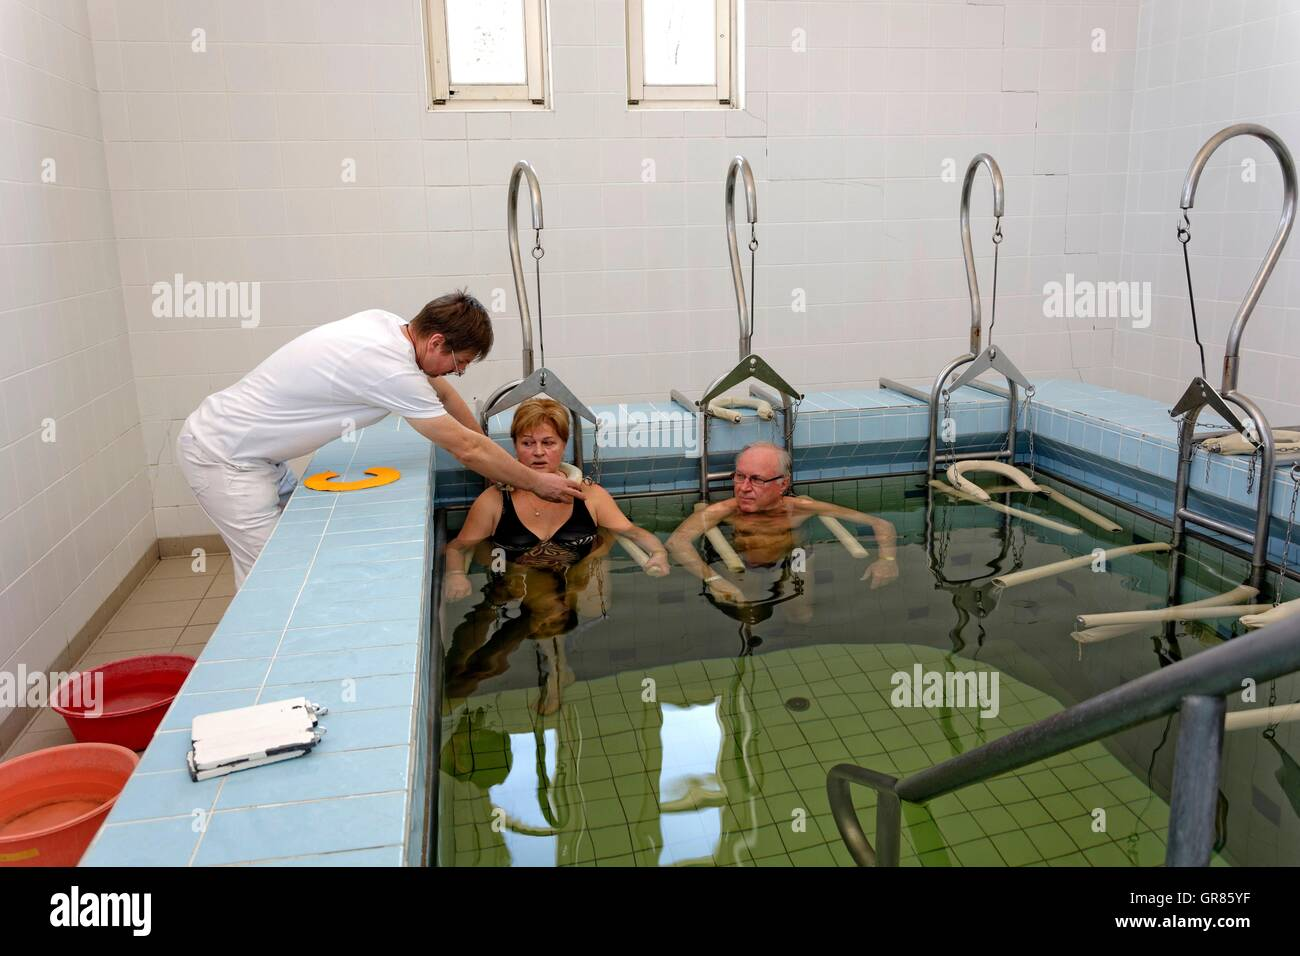 Senior Citizen-paar mit Therapeuten In Gewicht-Bad im Spa Cegled Stockbild